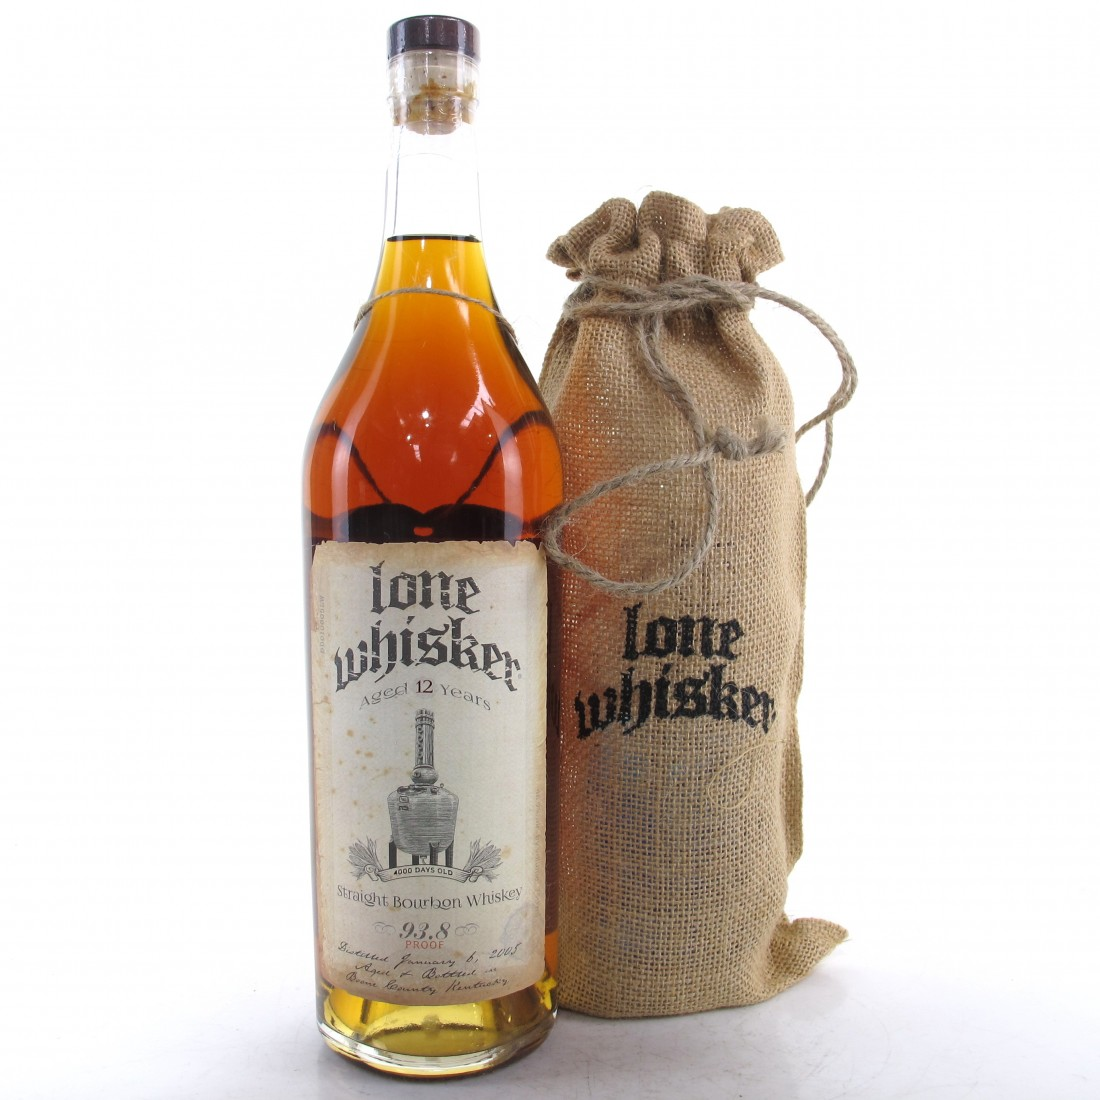 Lone Whisker 12 Year Old Straight Bourbon Whiskey